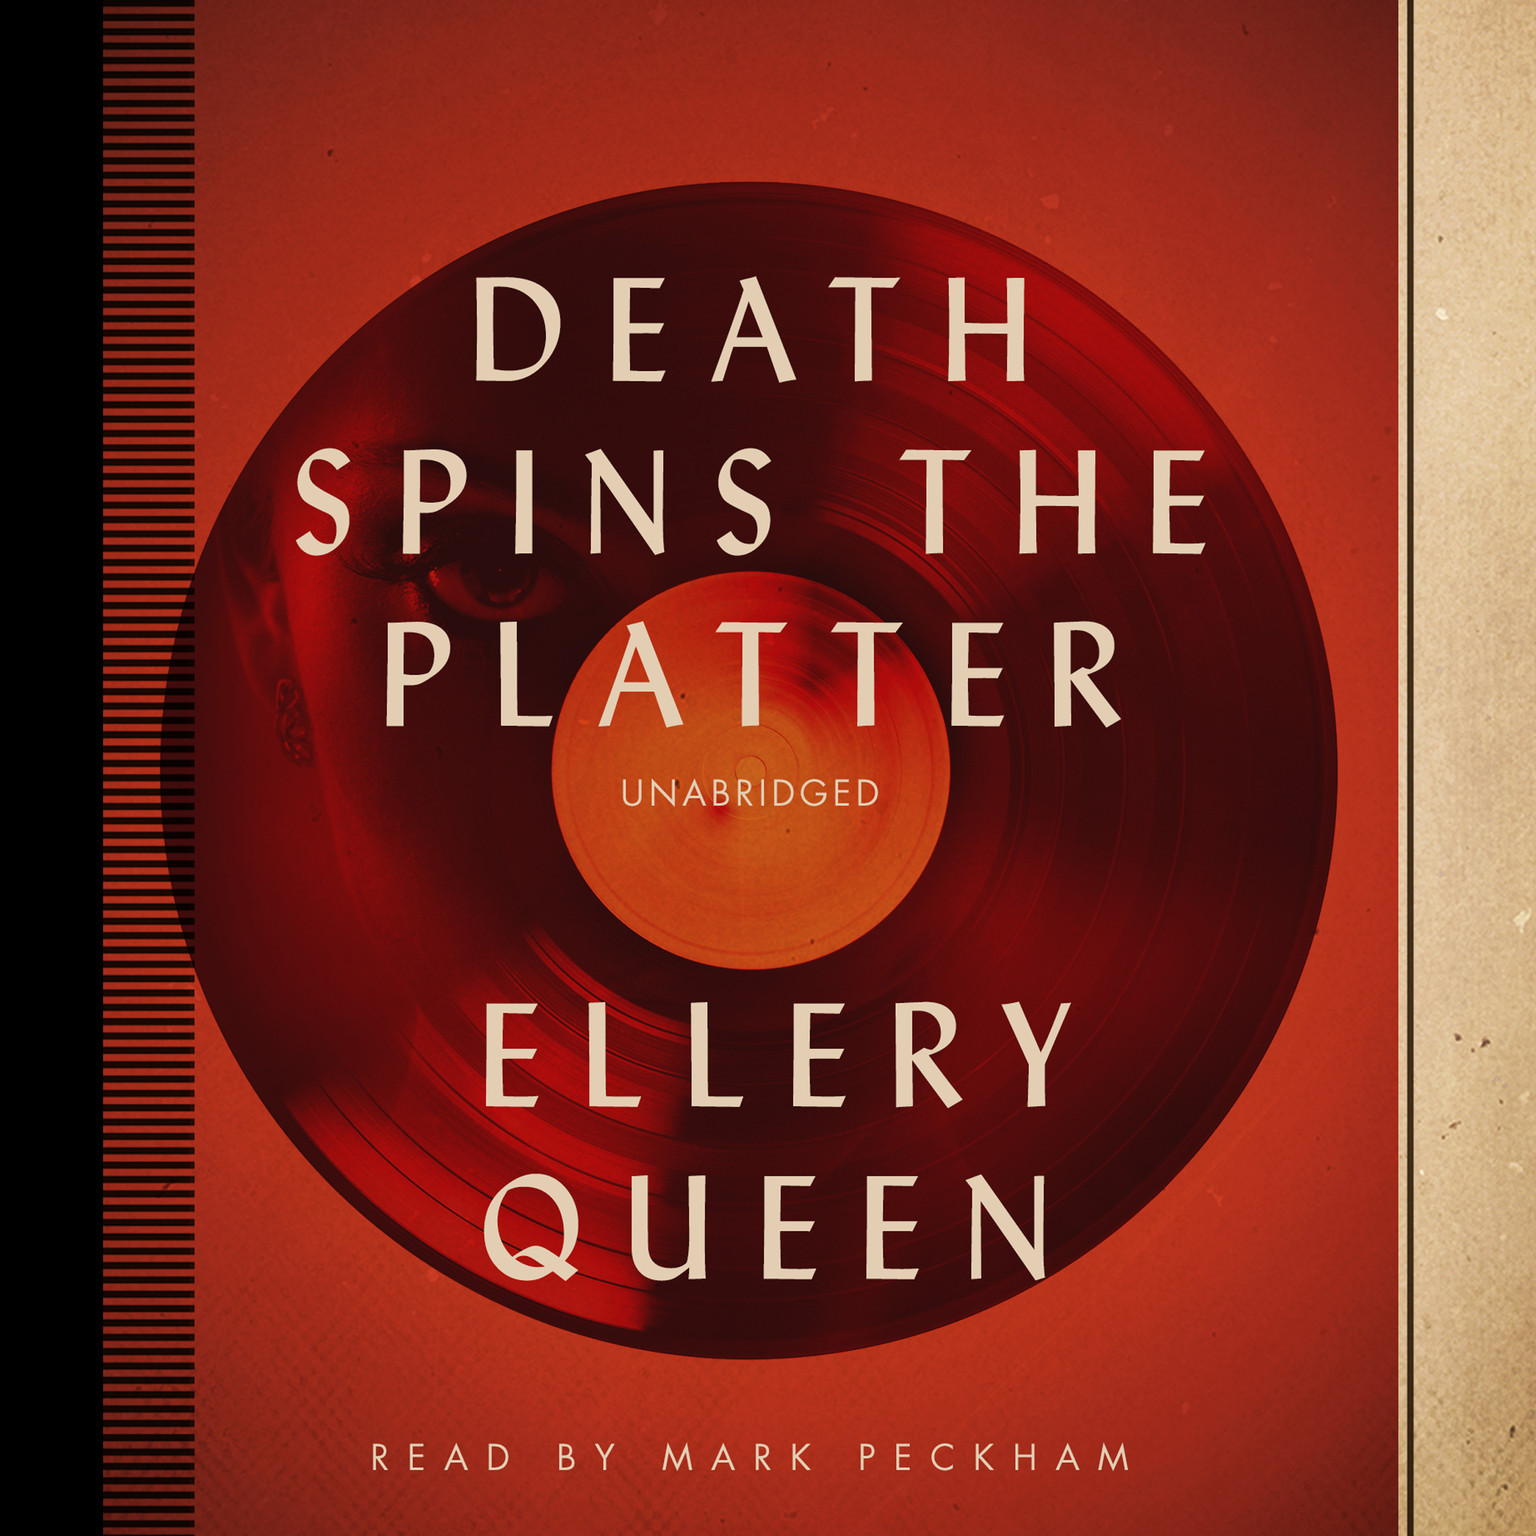 Printable Death Spins the Platter Audiobook Cover Art